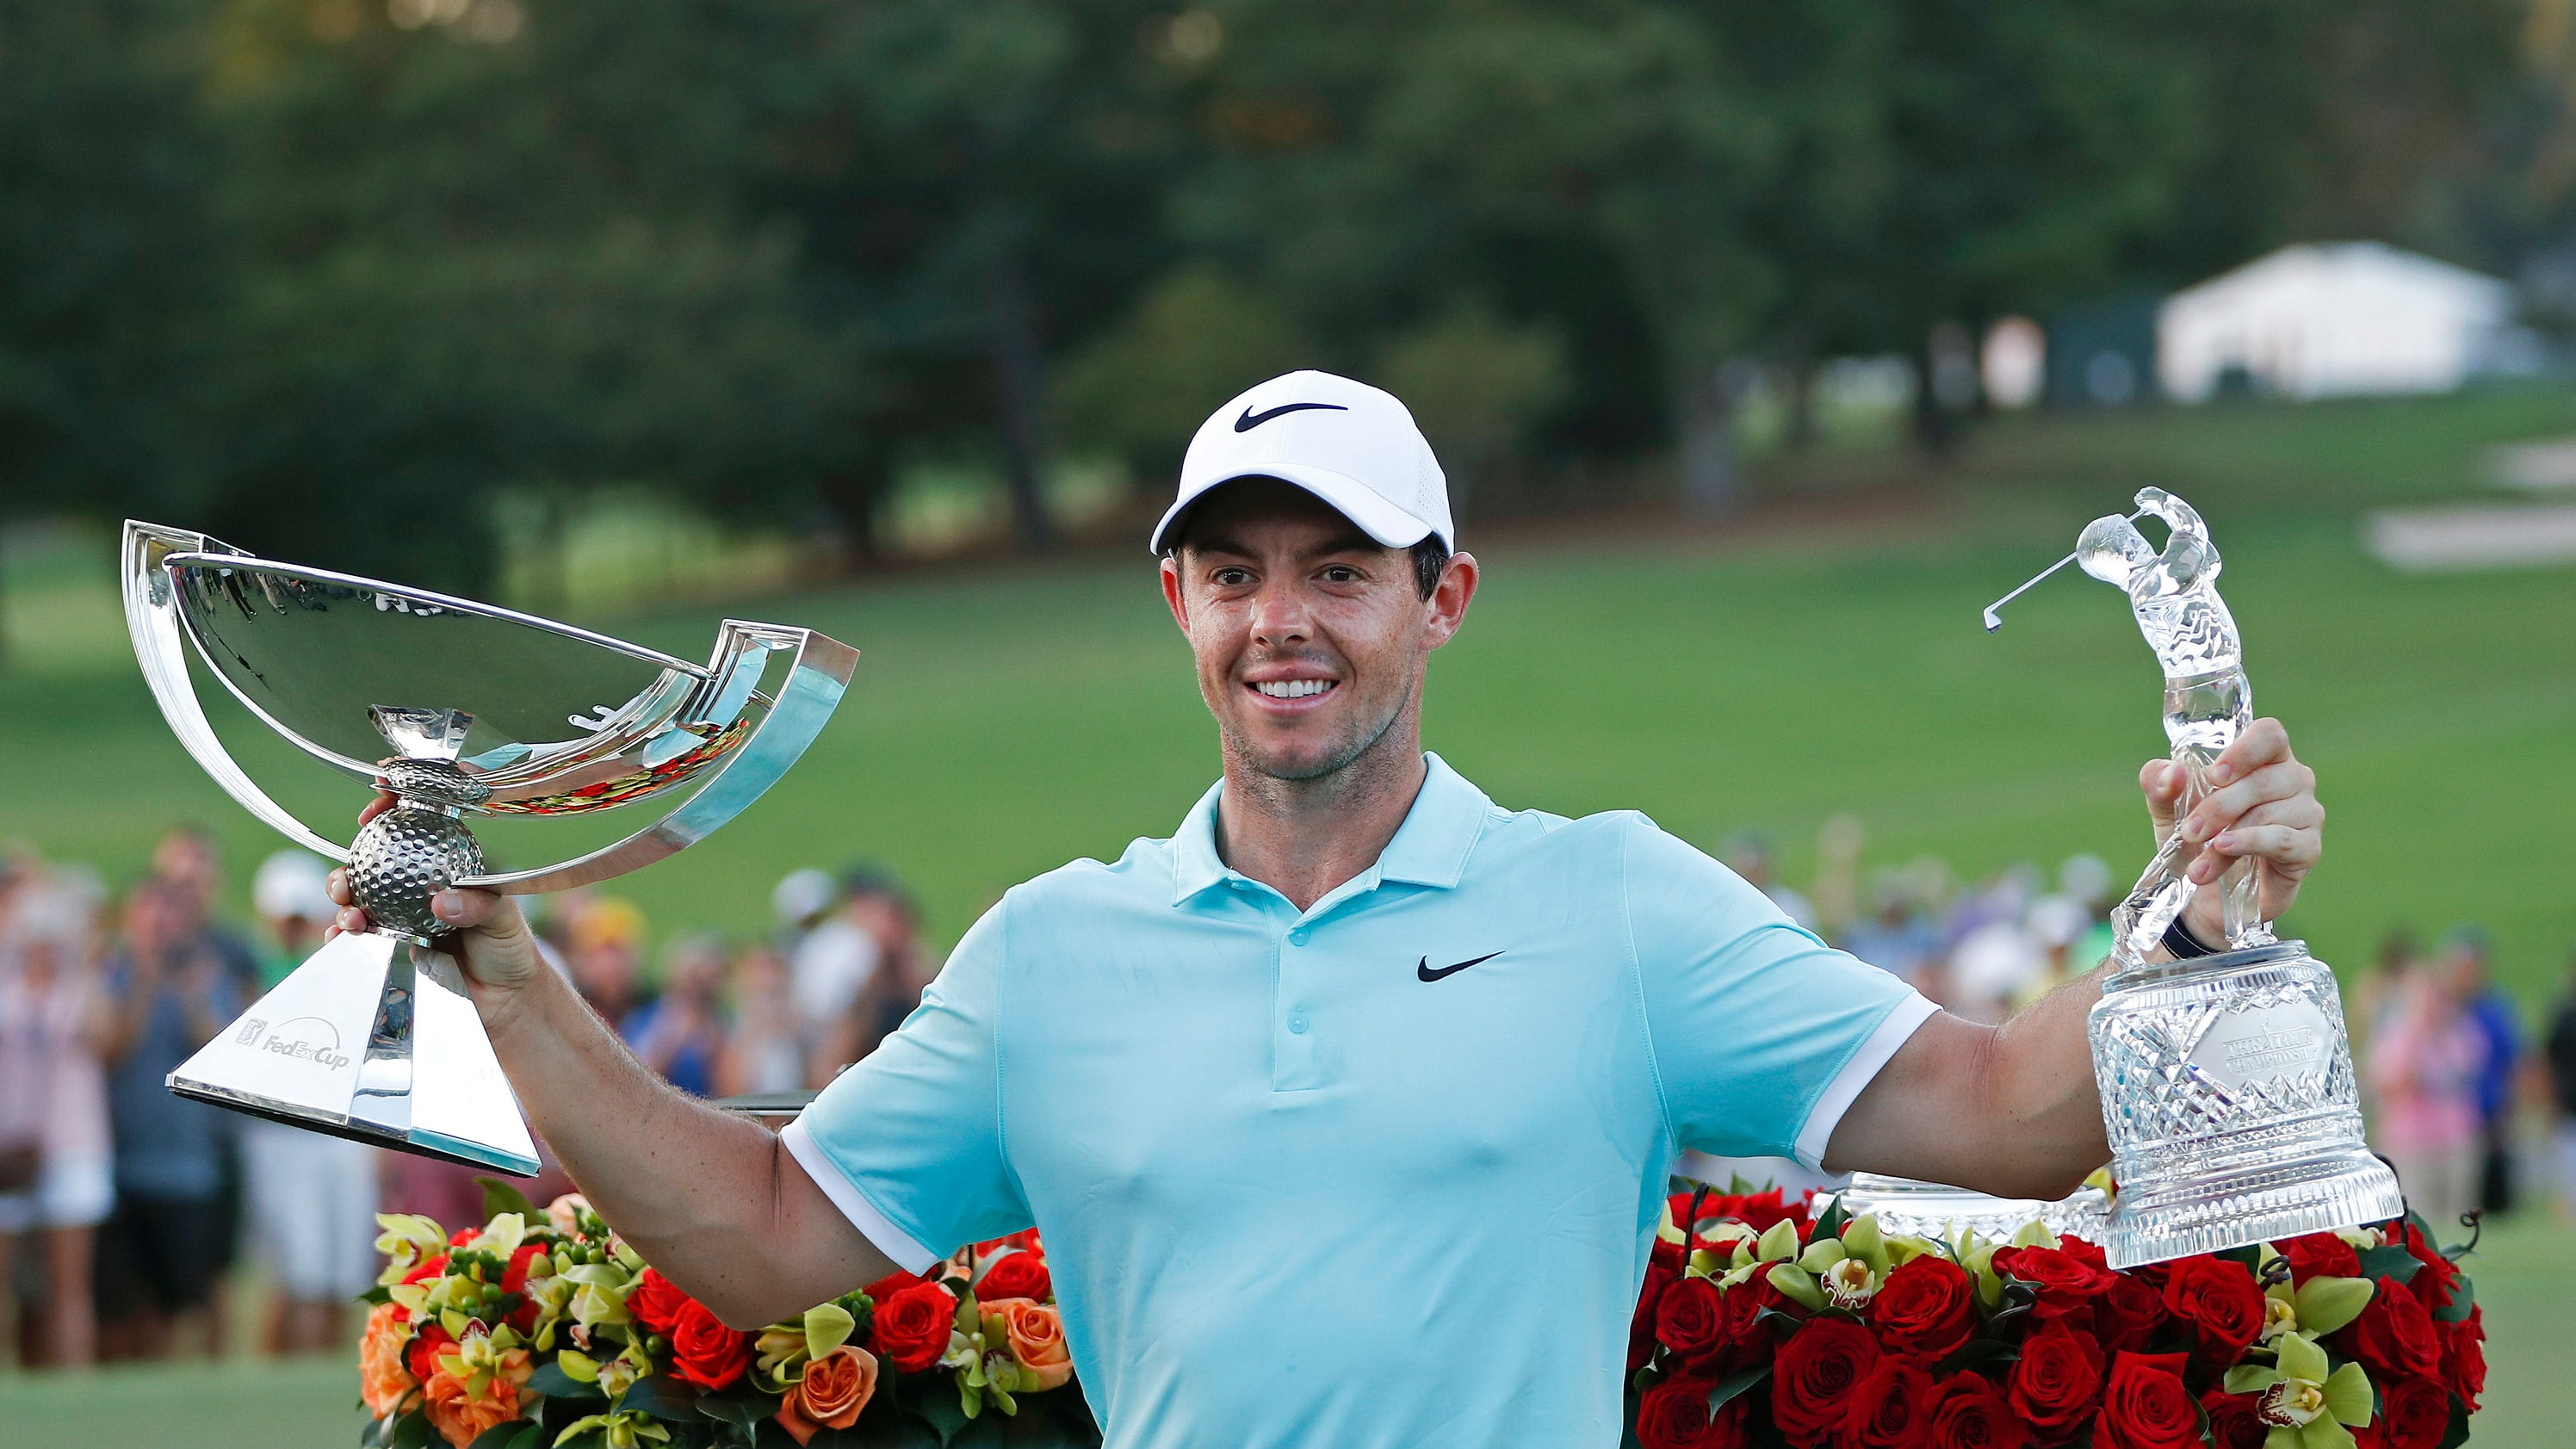 2 trophies on the line as pga tour season ends at east lake